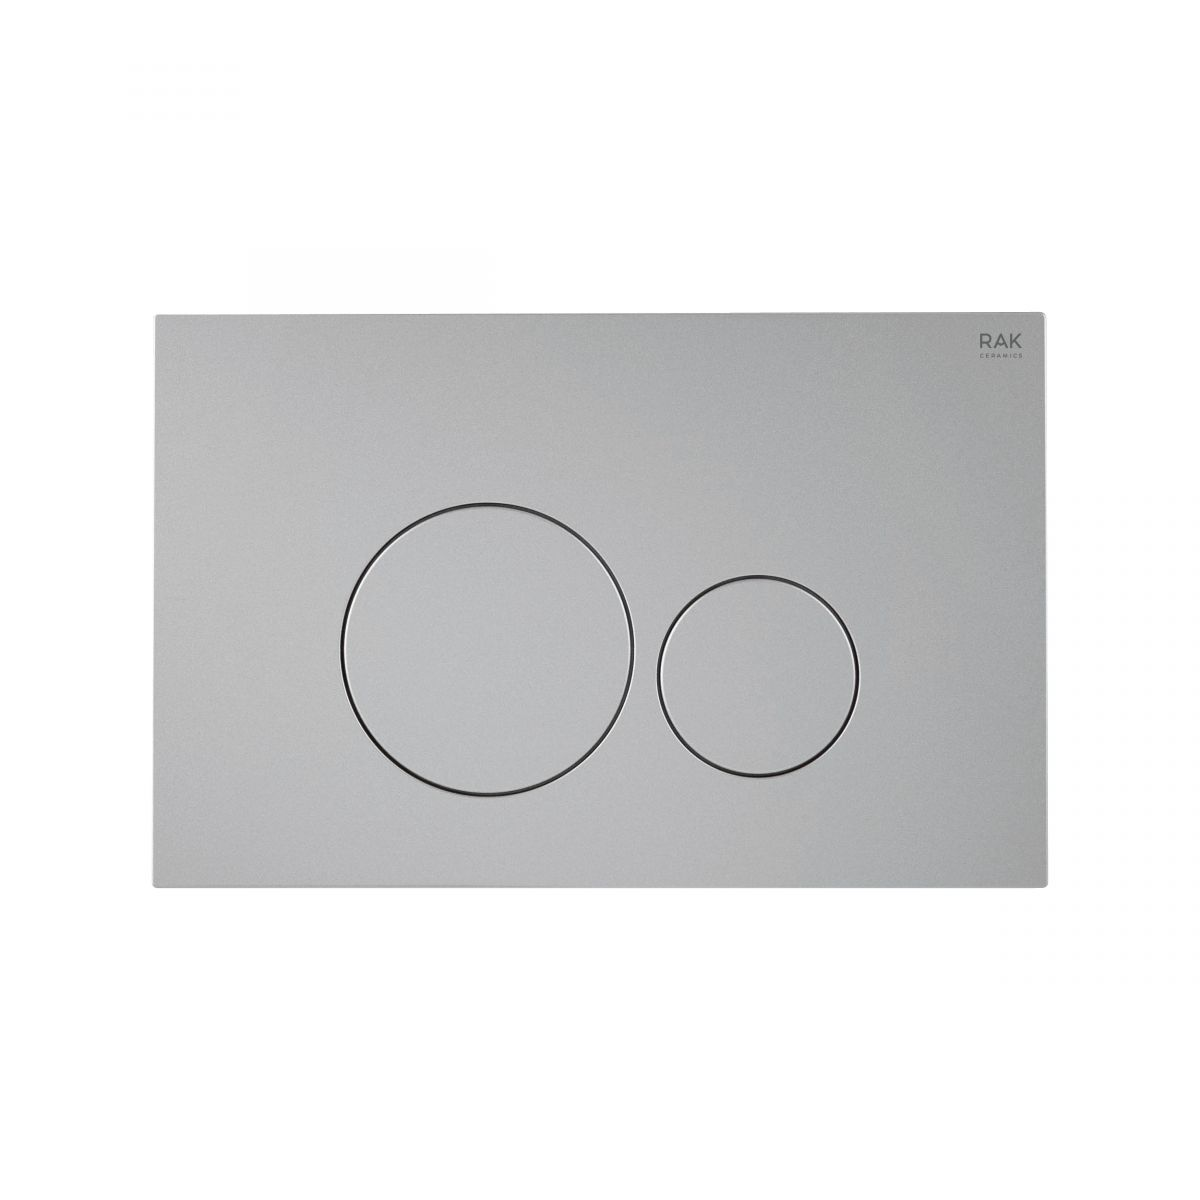 RAK Ecofix White Flush Plate with Round Push Buttons